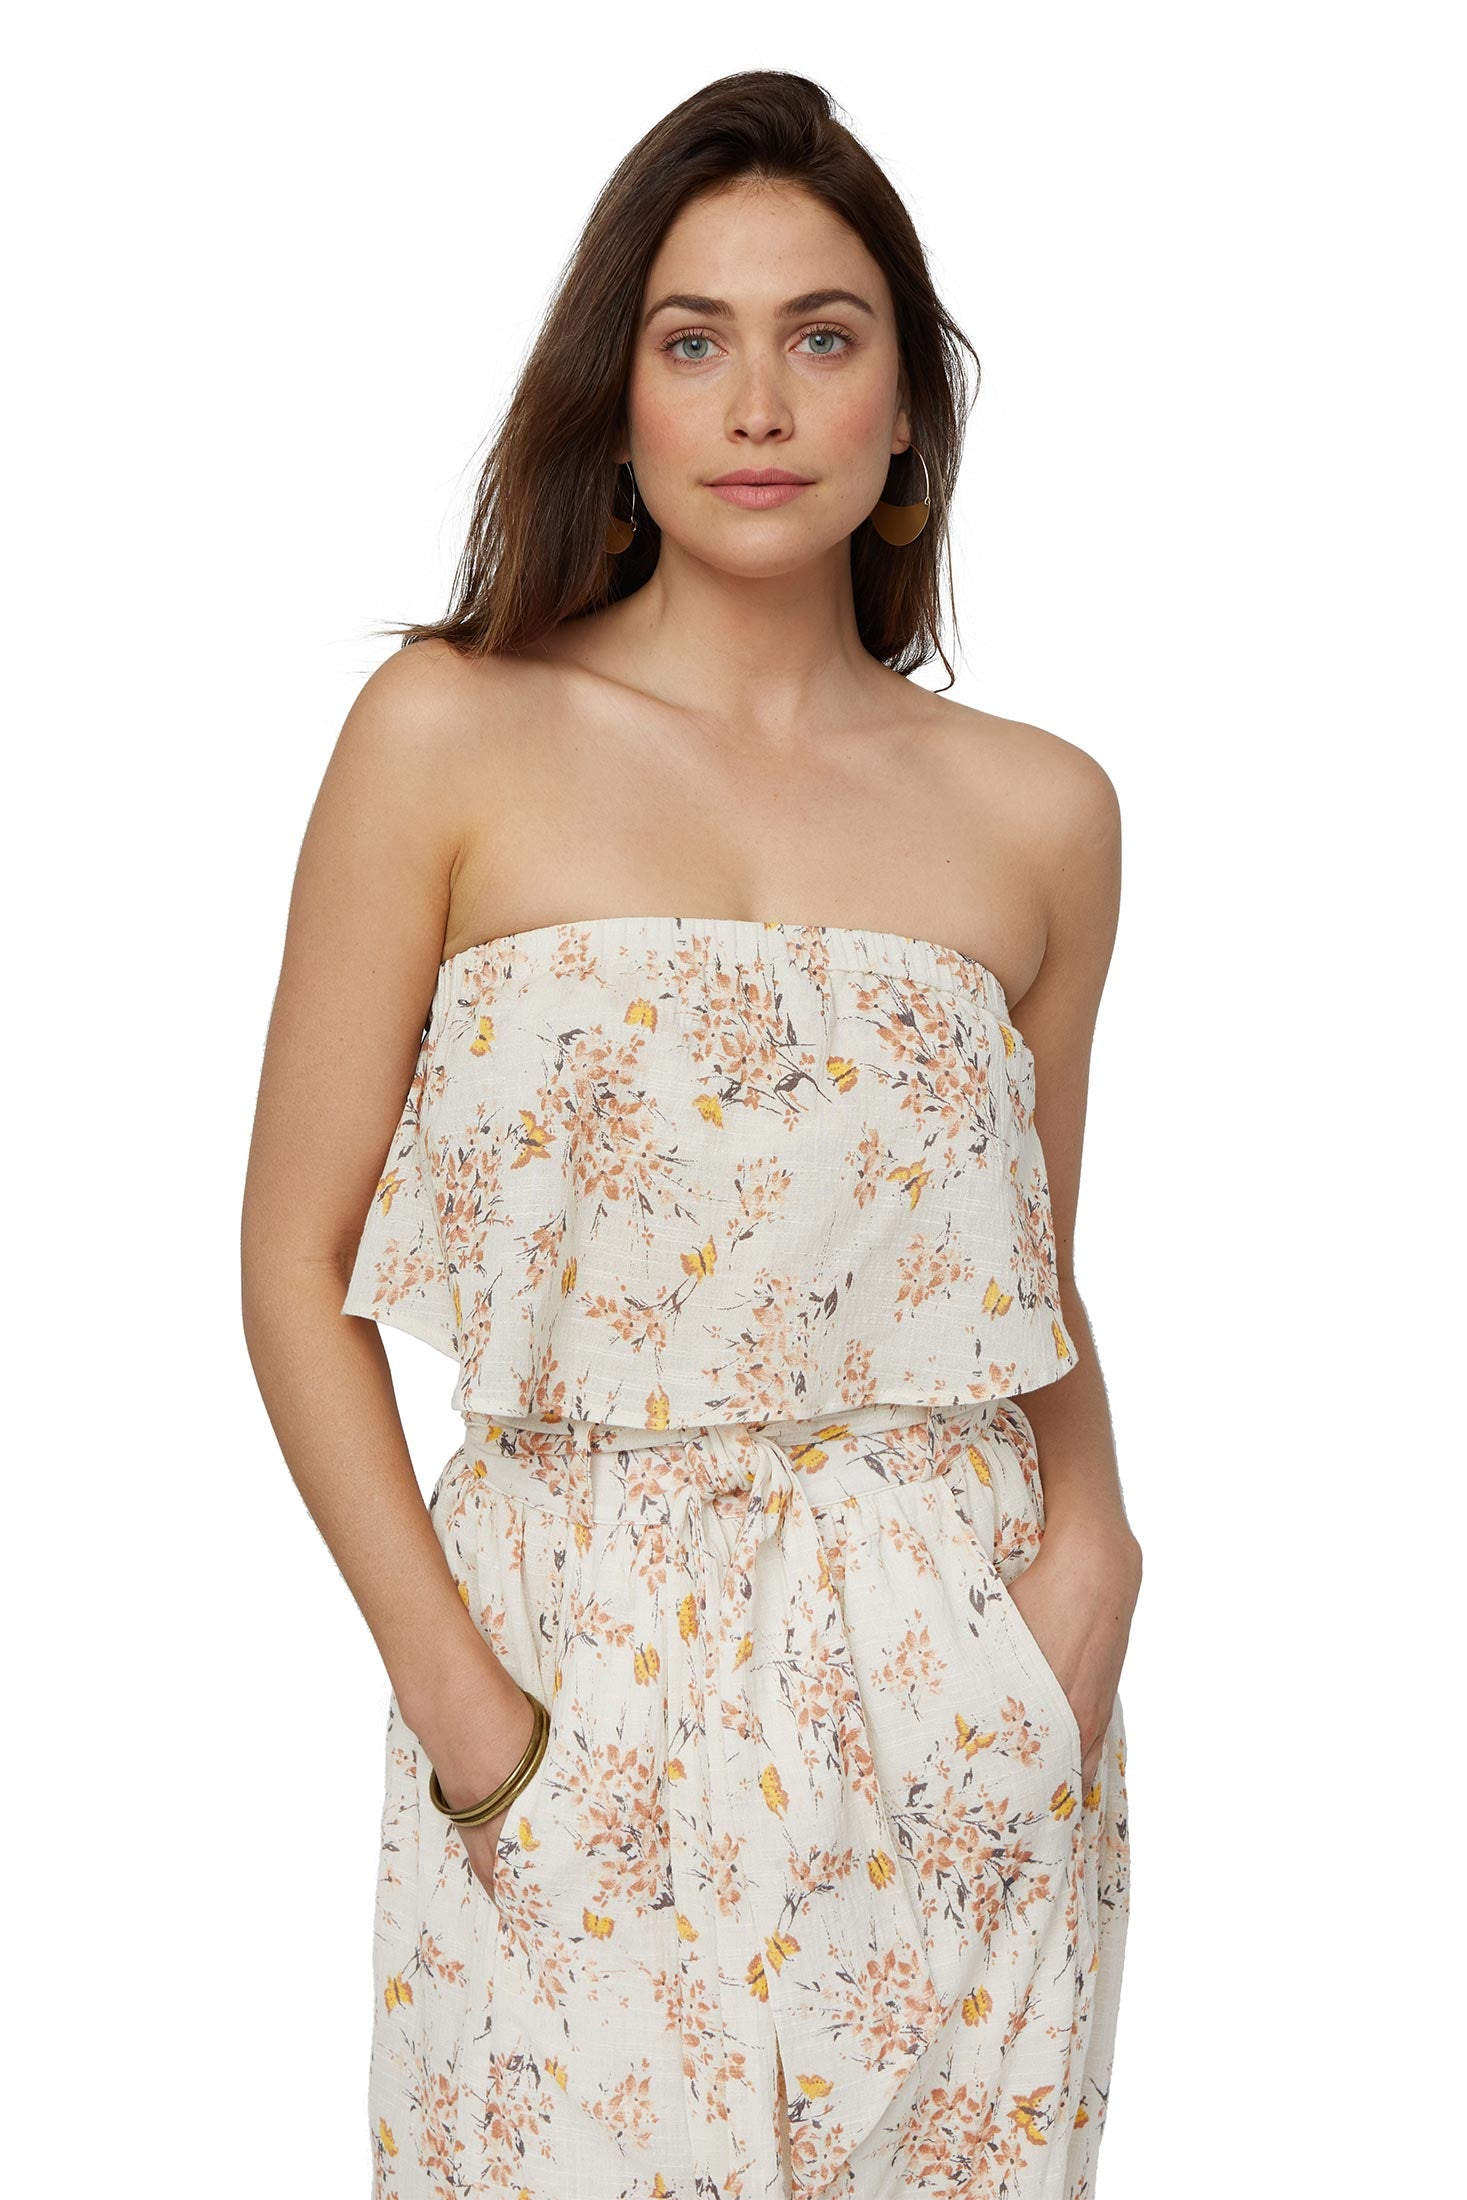 Gauze Romie Top - Butterfly